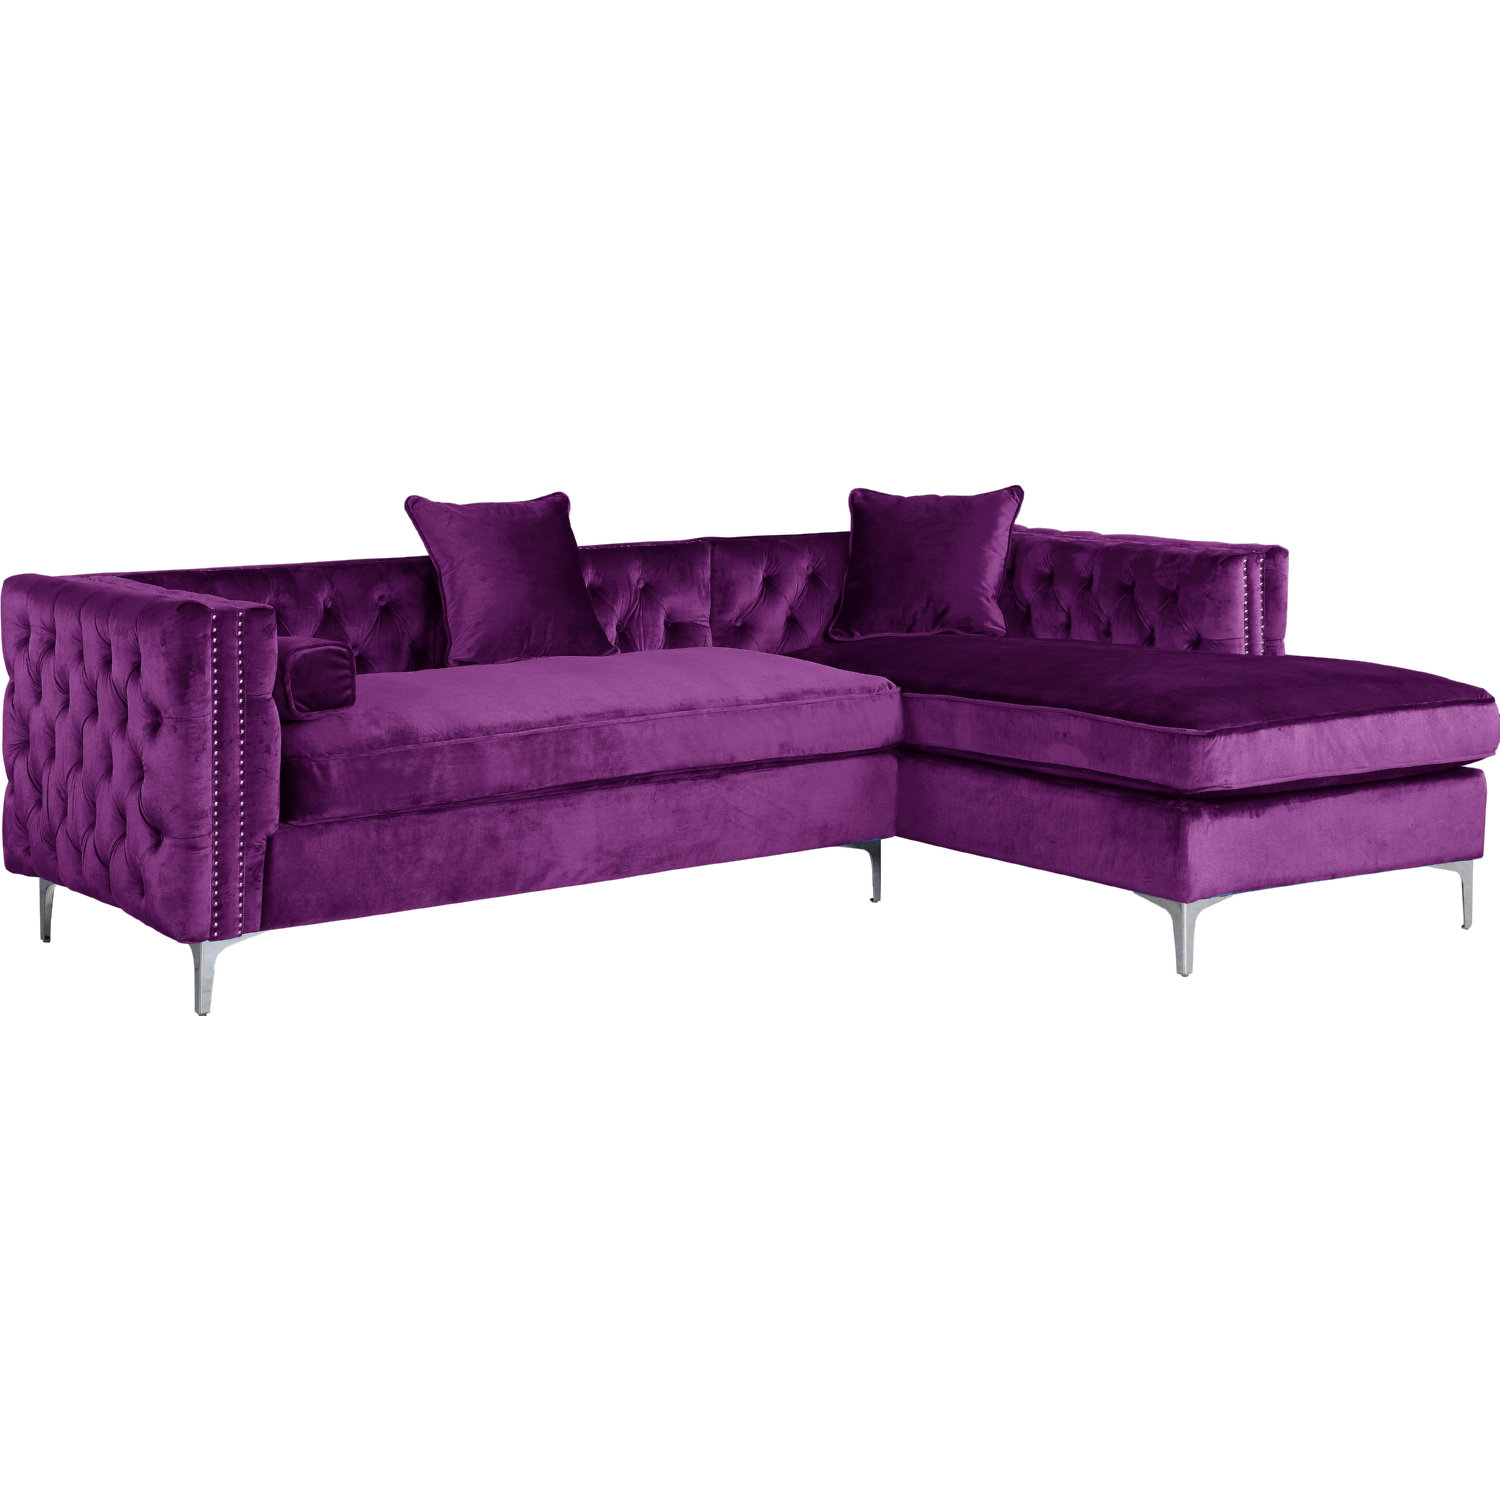 Sensational Da Vinci Sectional Sofa W Right Chaise In Tufted Purple Velvet W Nailhead By Chic Home Cjindustries Chair Design For Home Cjindustriesco